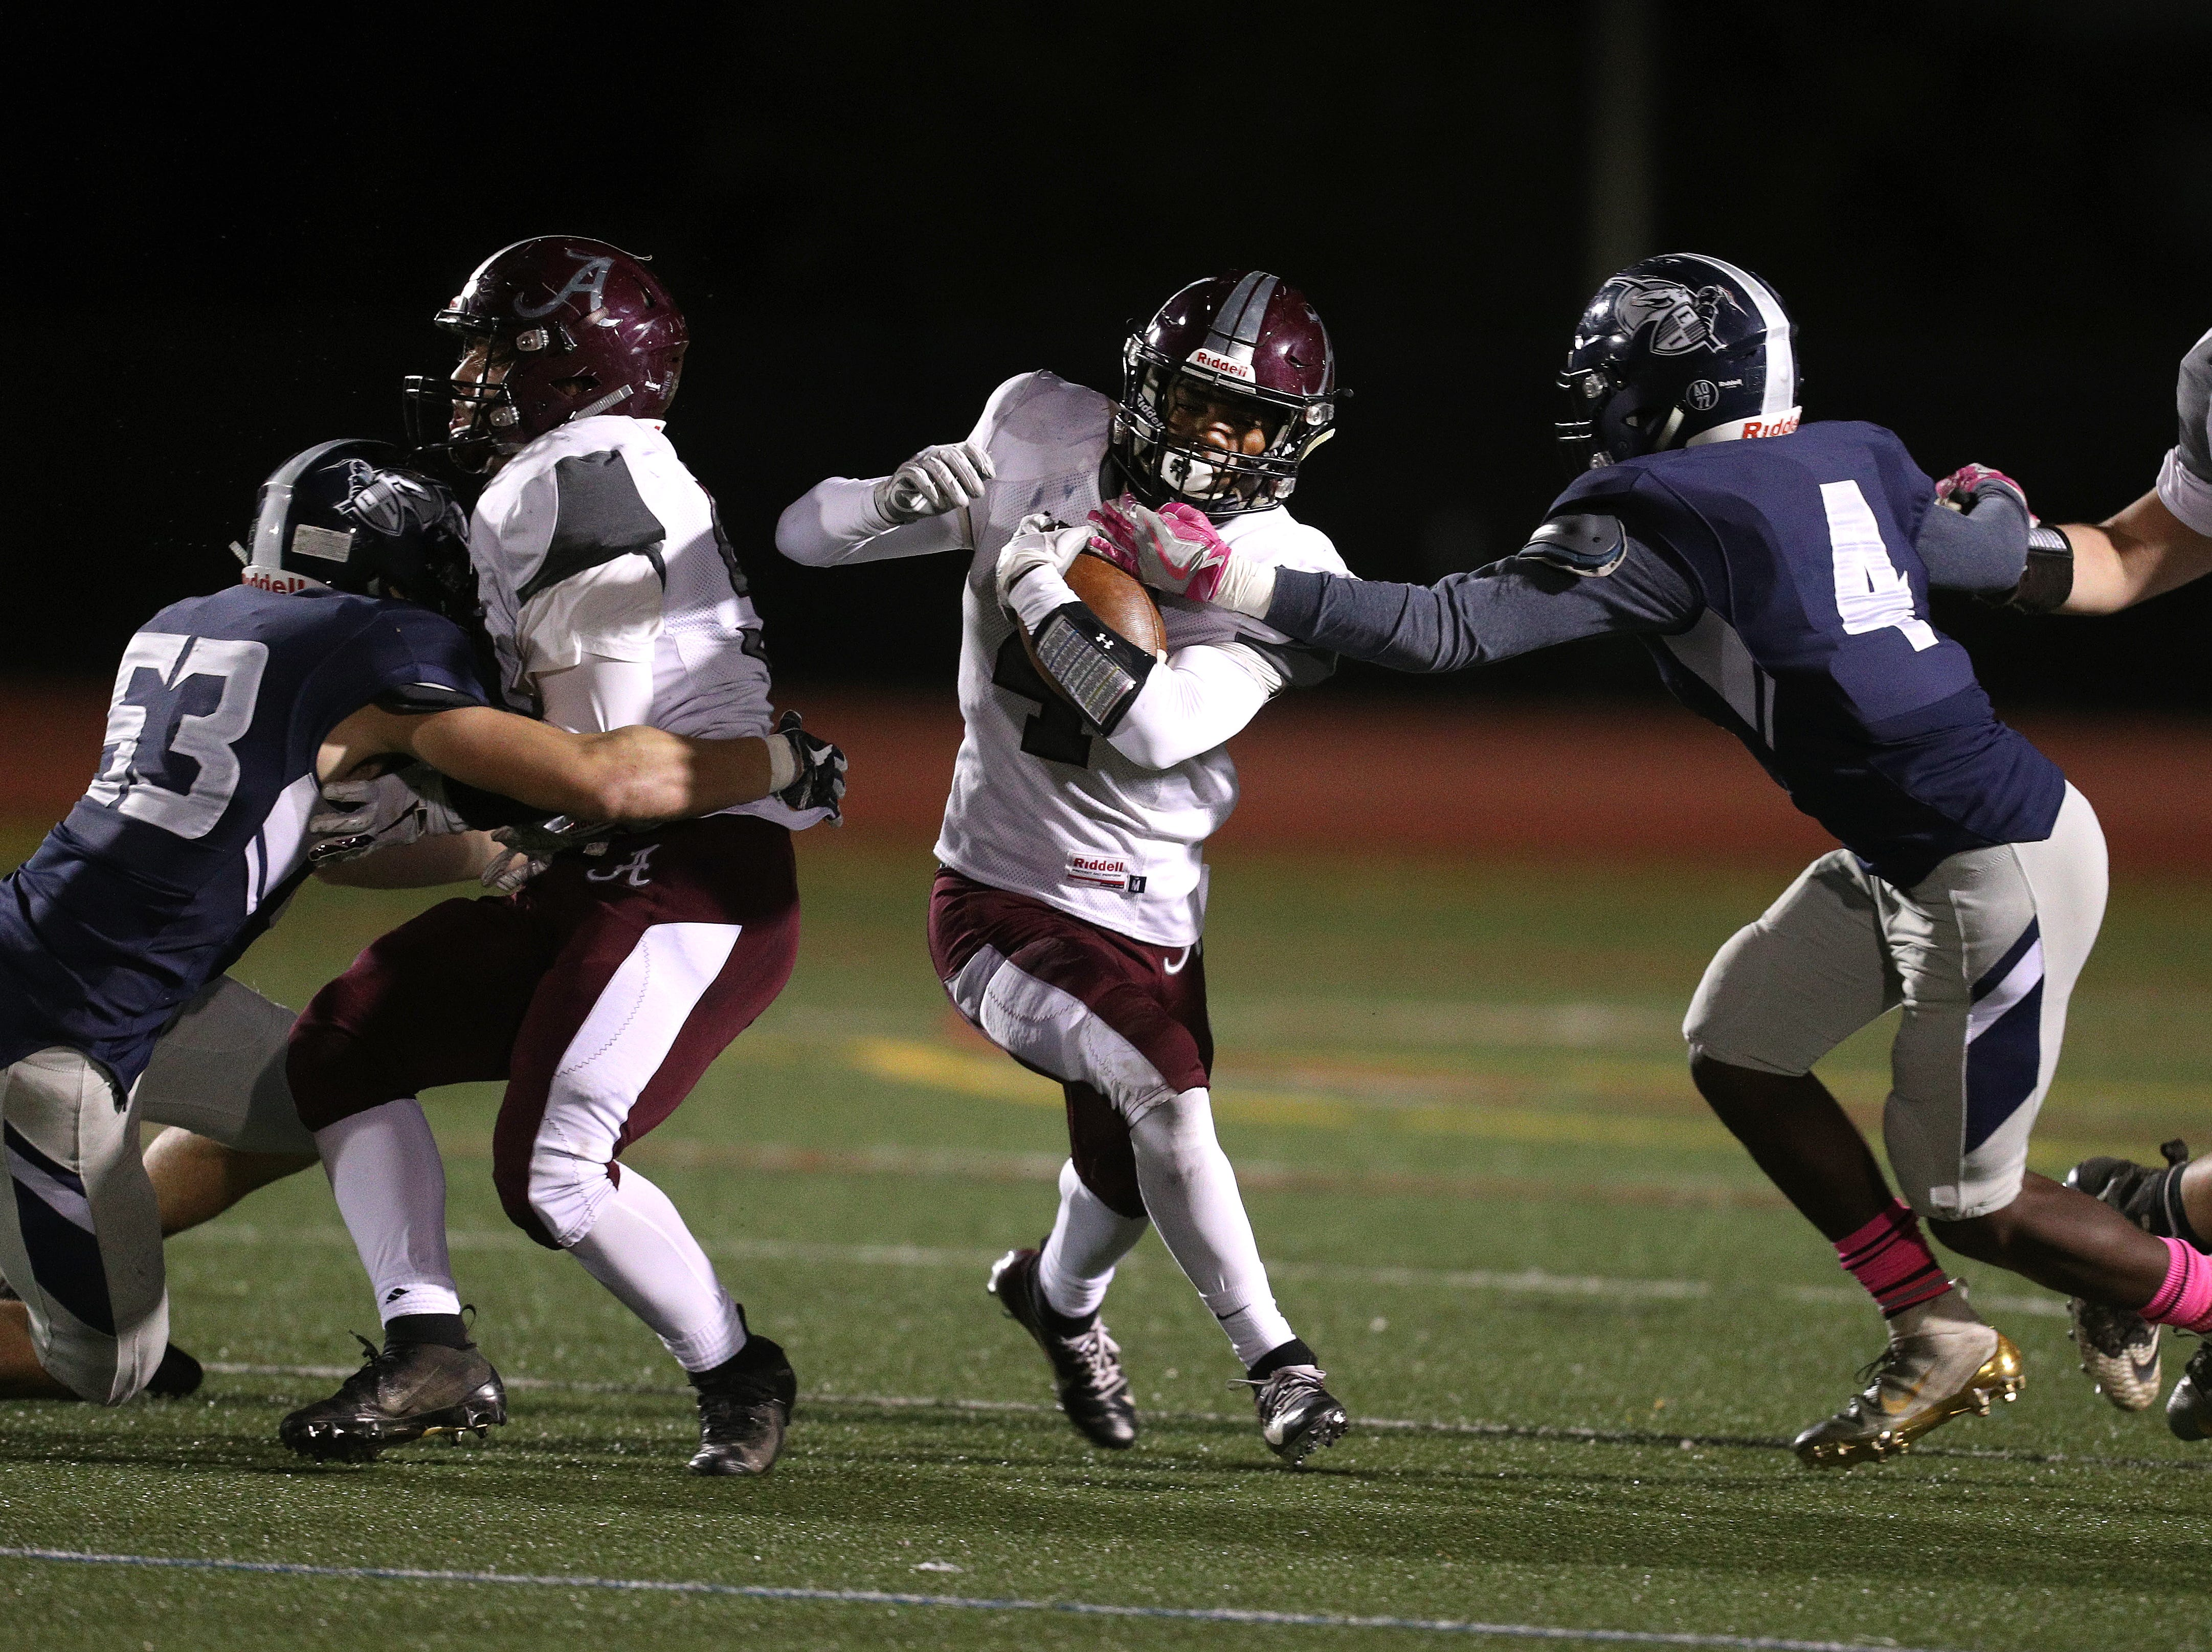 Arcadia running back K'myn Crumity tries to fight through a tackle by Eastridge's Koby Jones.